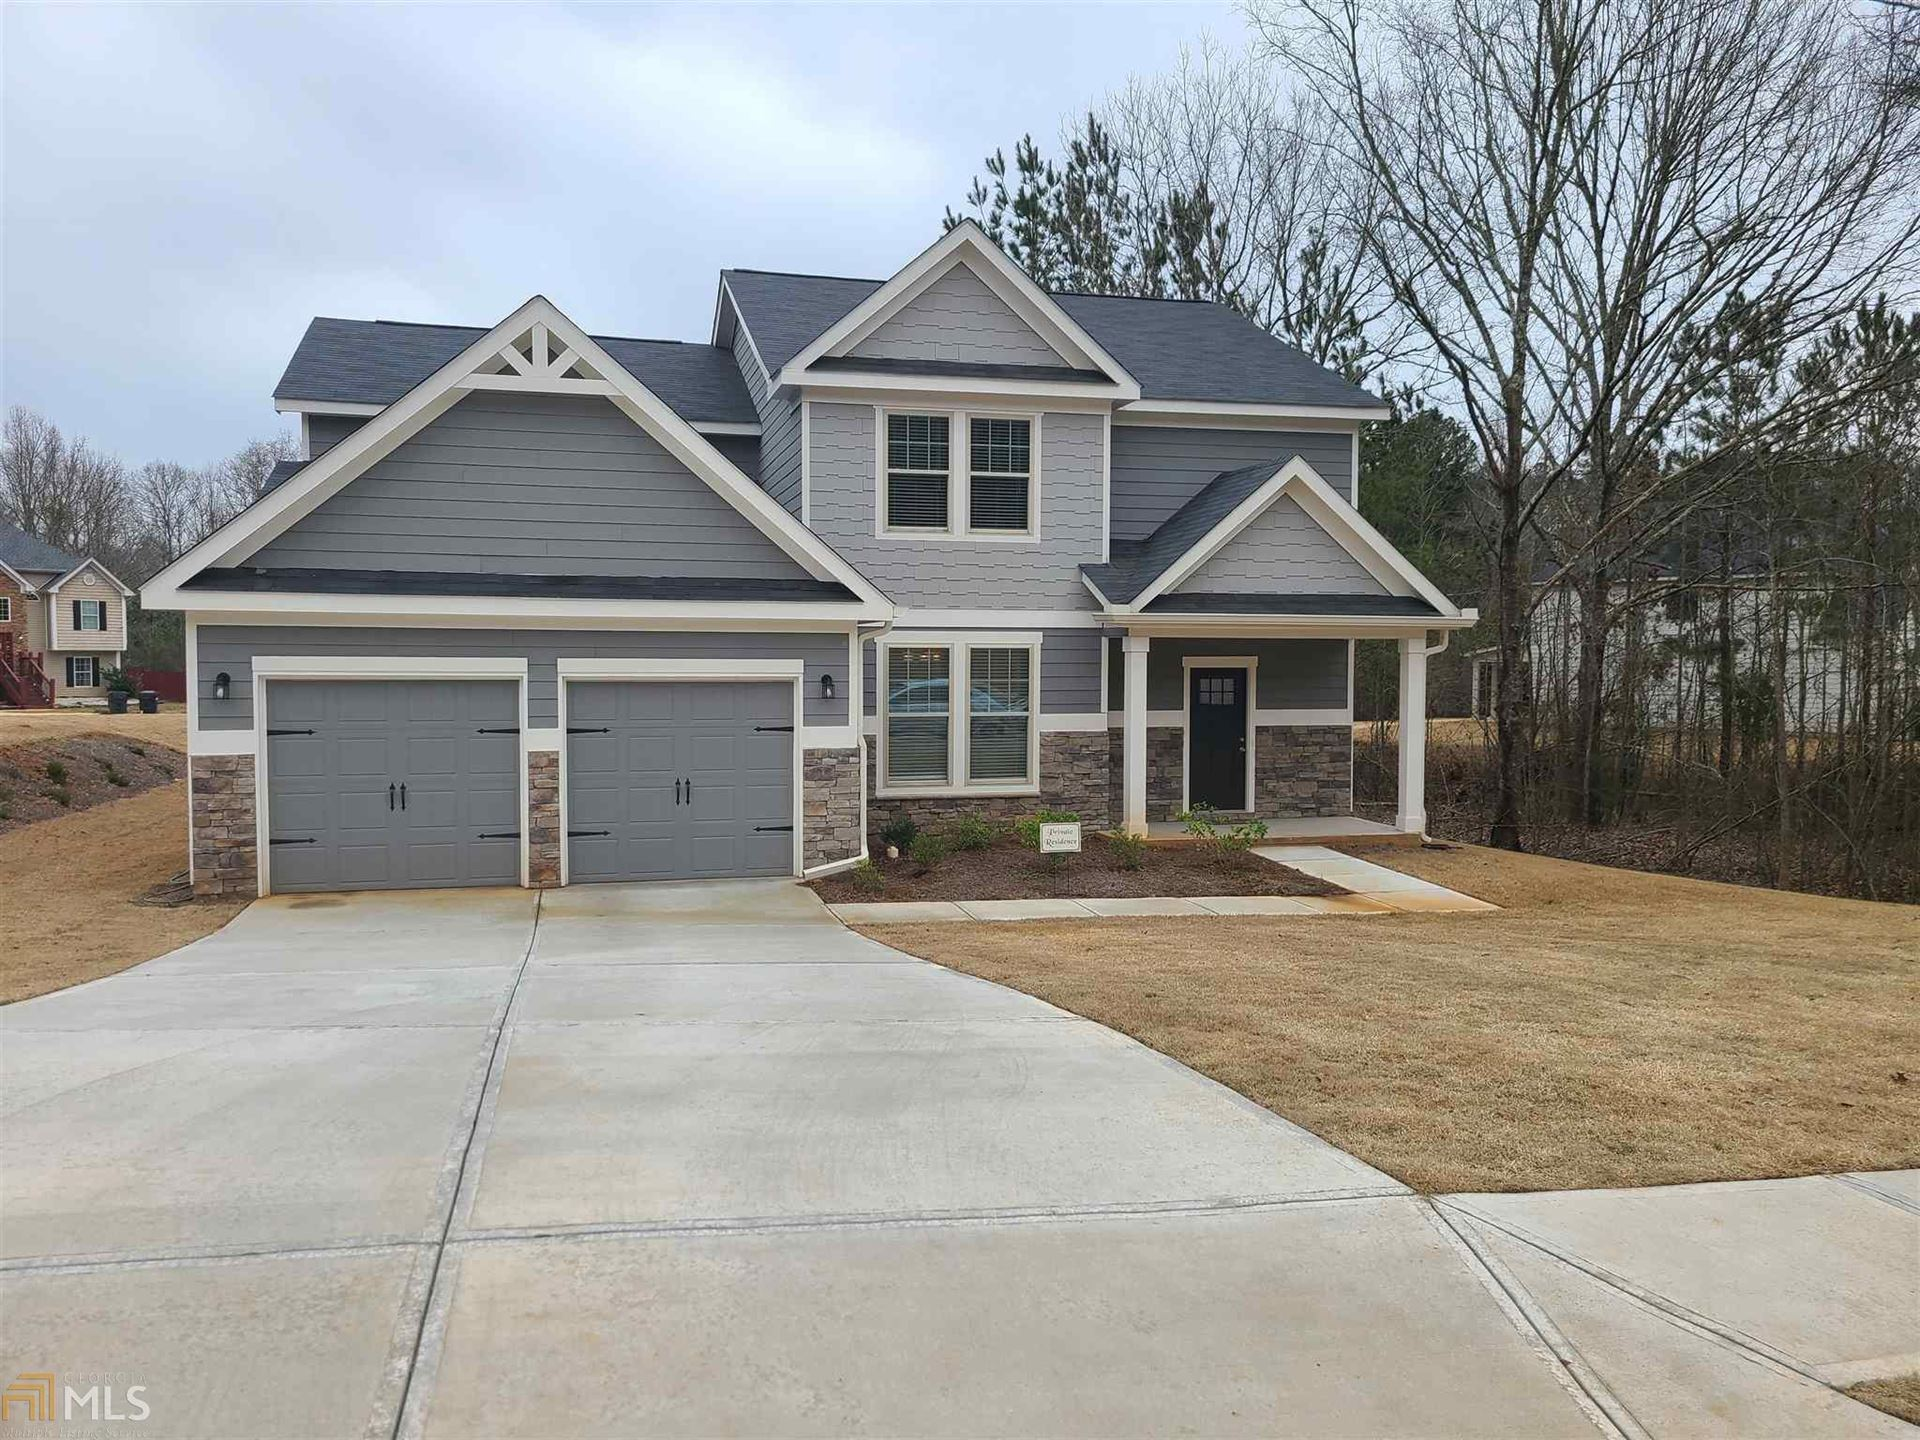 Photo of 260 Stonecreek, Covington, GA 30016 (MLS # 8935797)